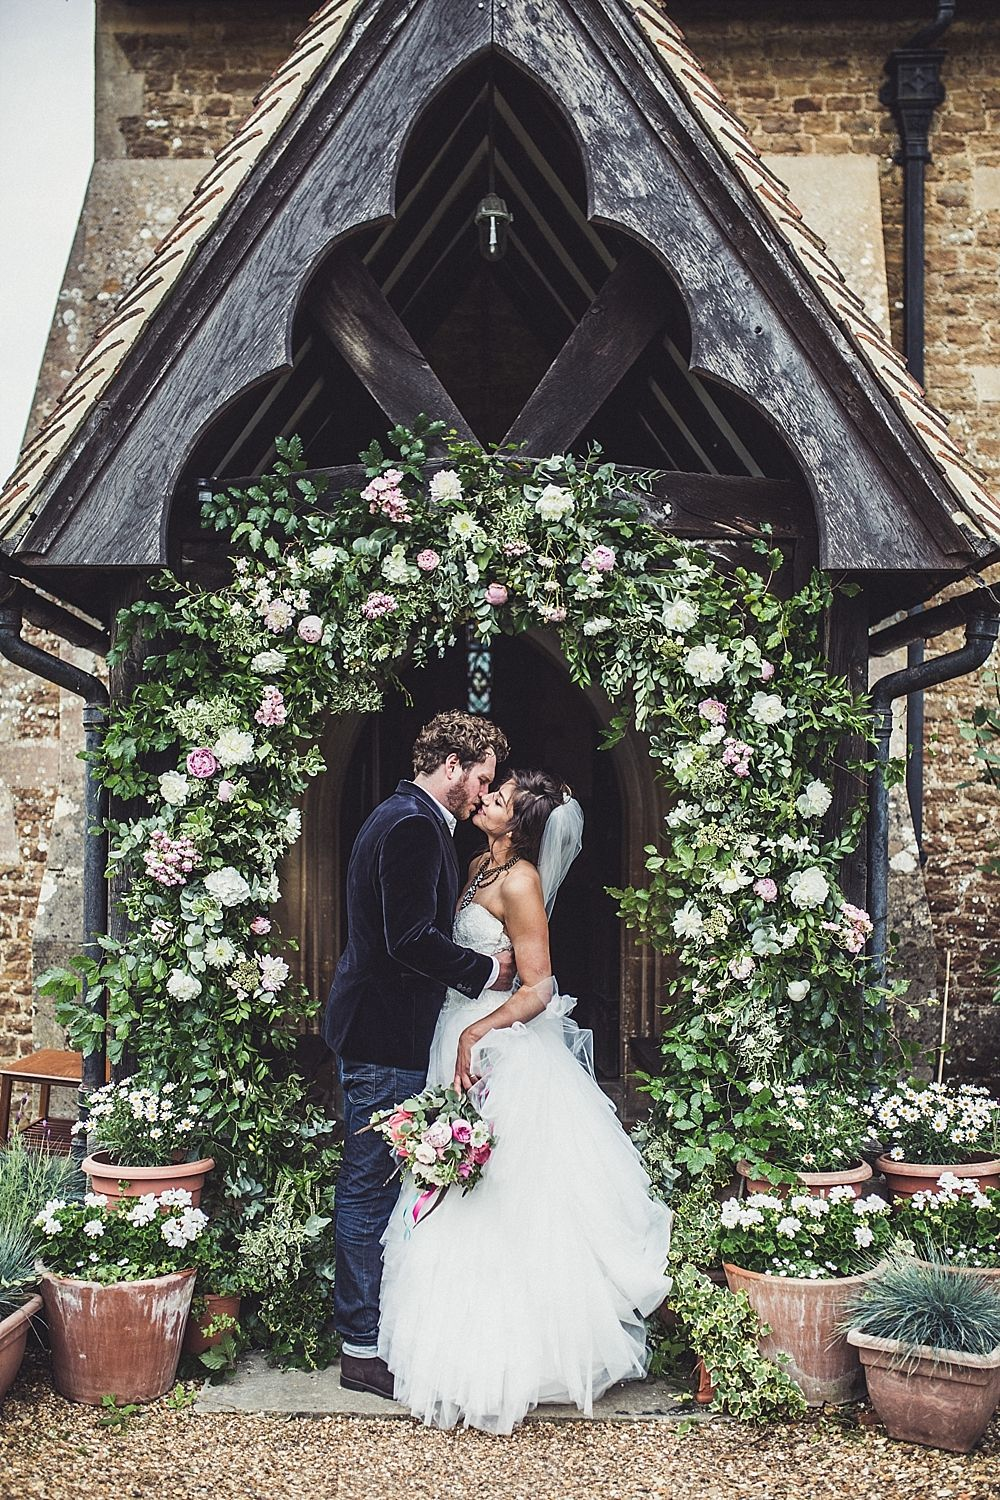 Rustic Glam Tipi Wedding With Pink Peony Bouquet   Floral arch, Tipi ...